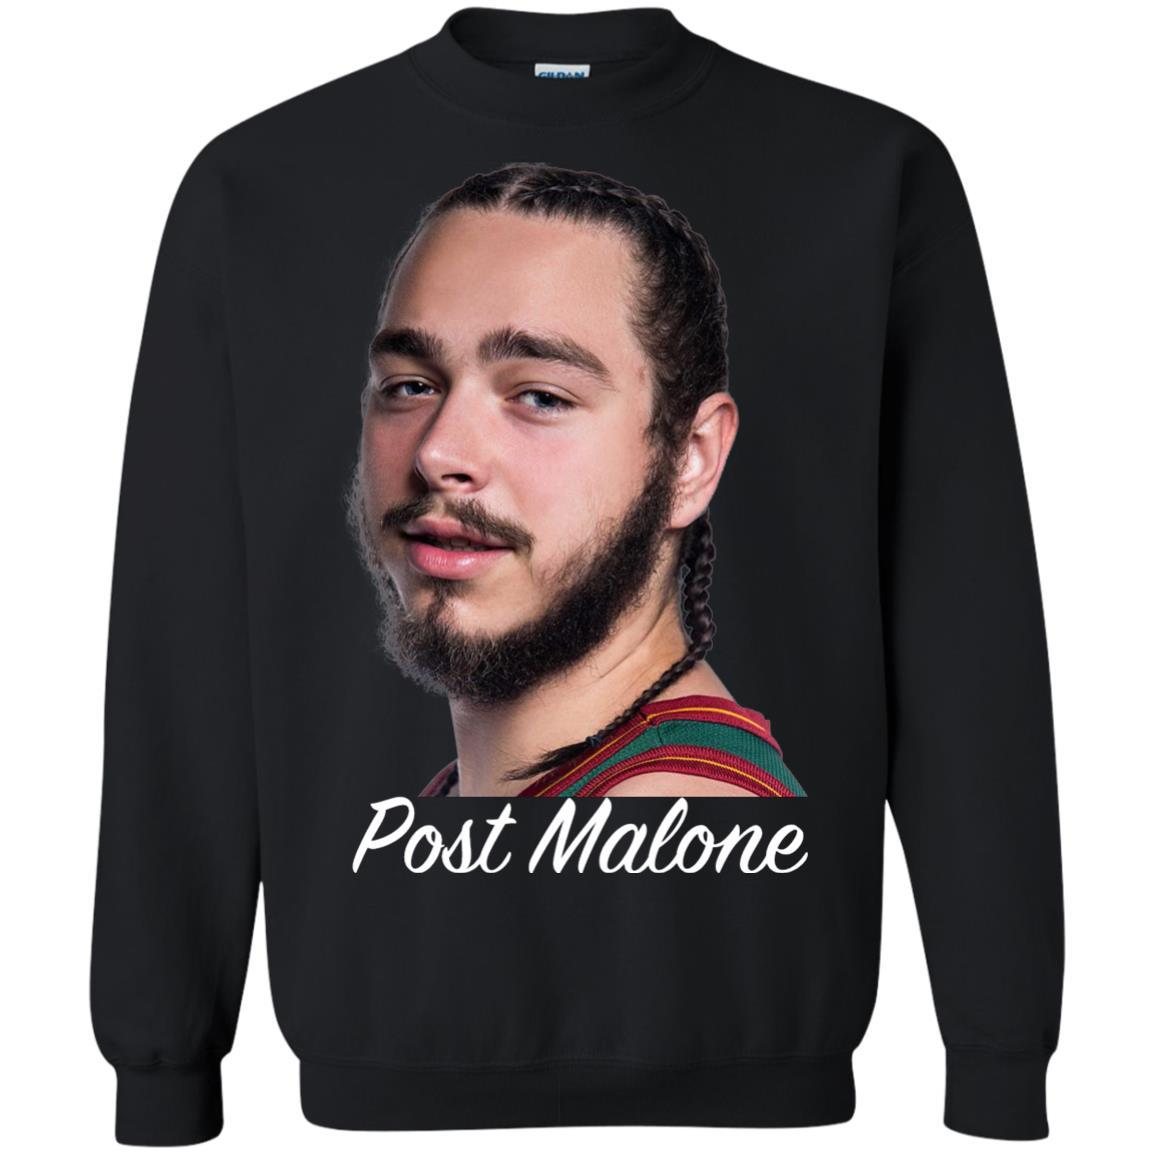 Post Malone White Iverson - Crewneck Pullover Sweatshirt Black / 5XL